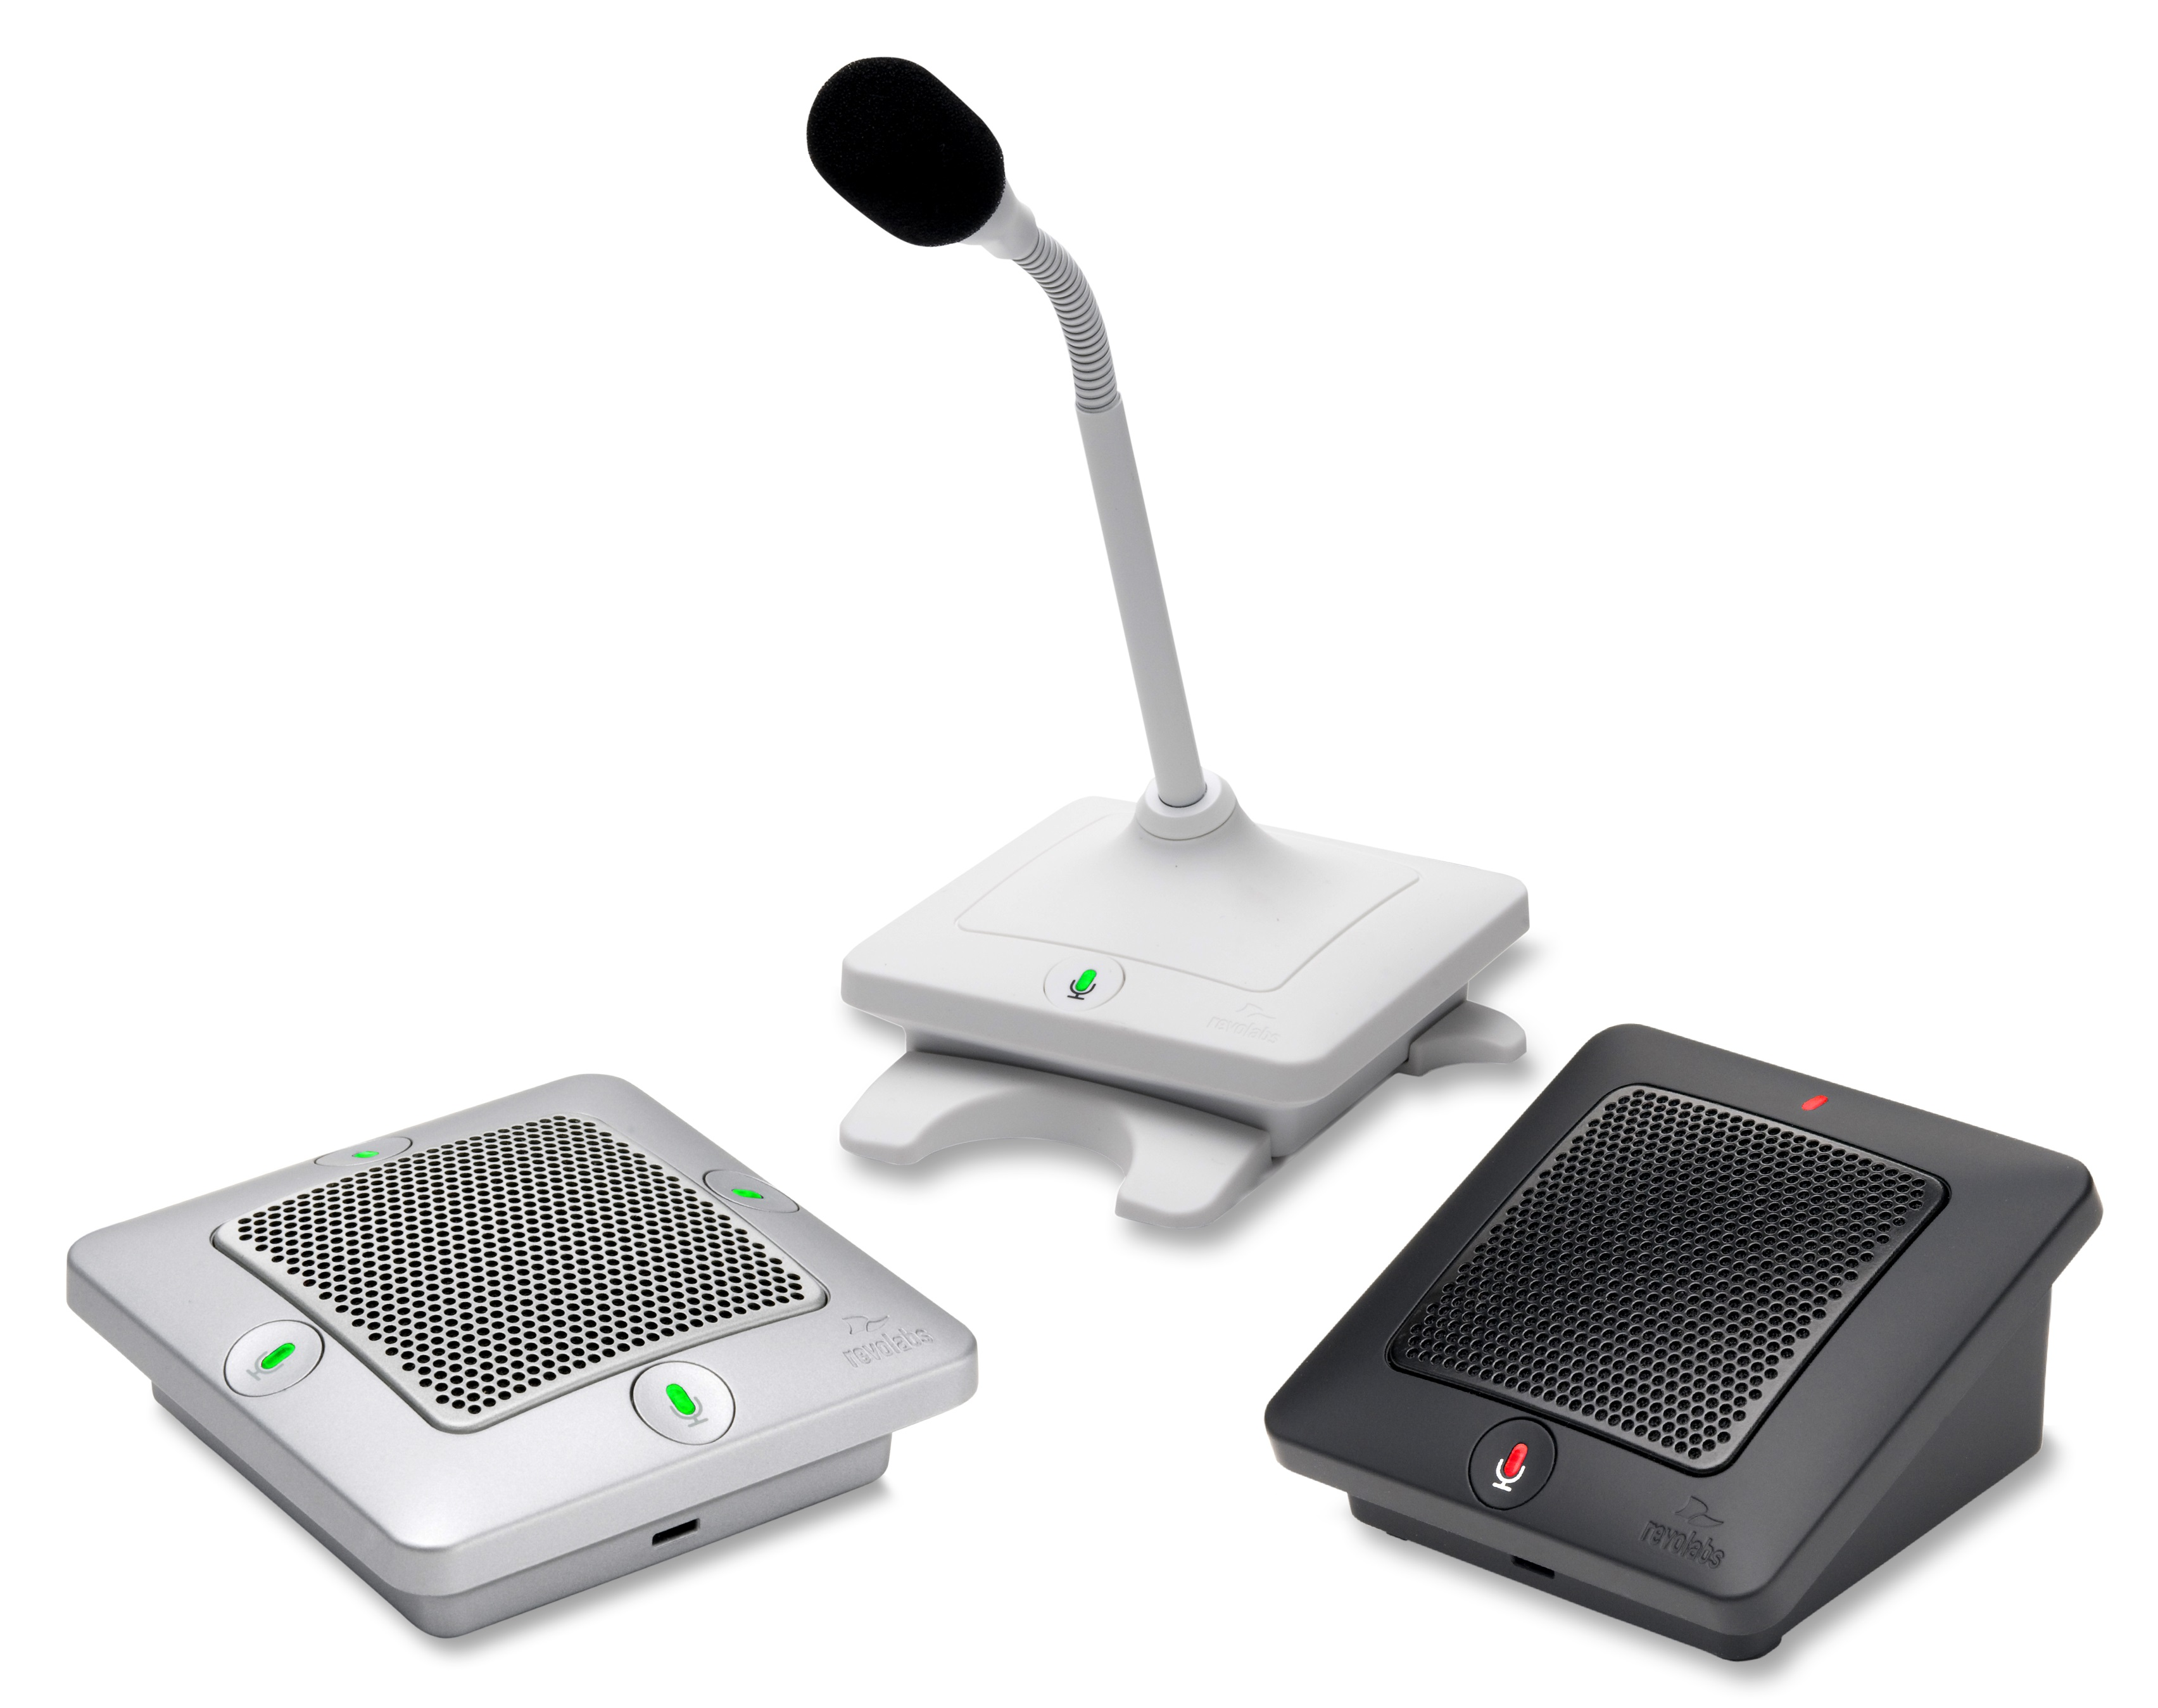 Revolabs Introduces New Microphones Into Its Elite Wired Line ...